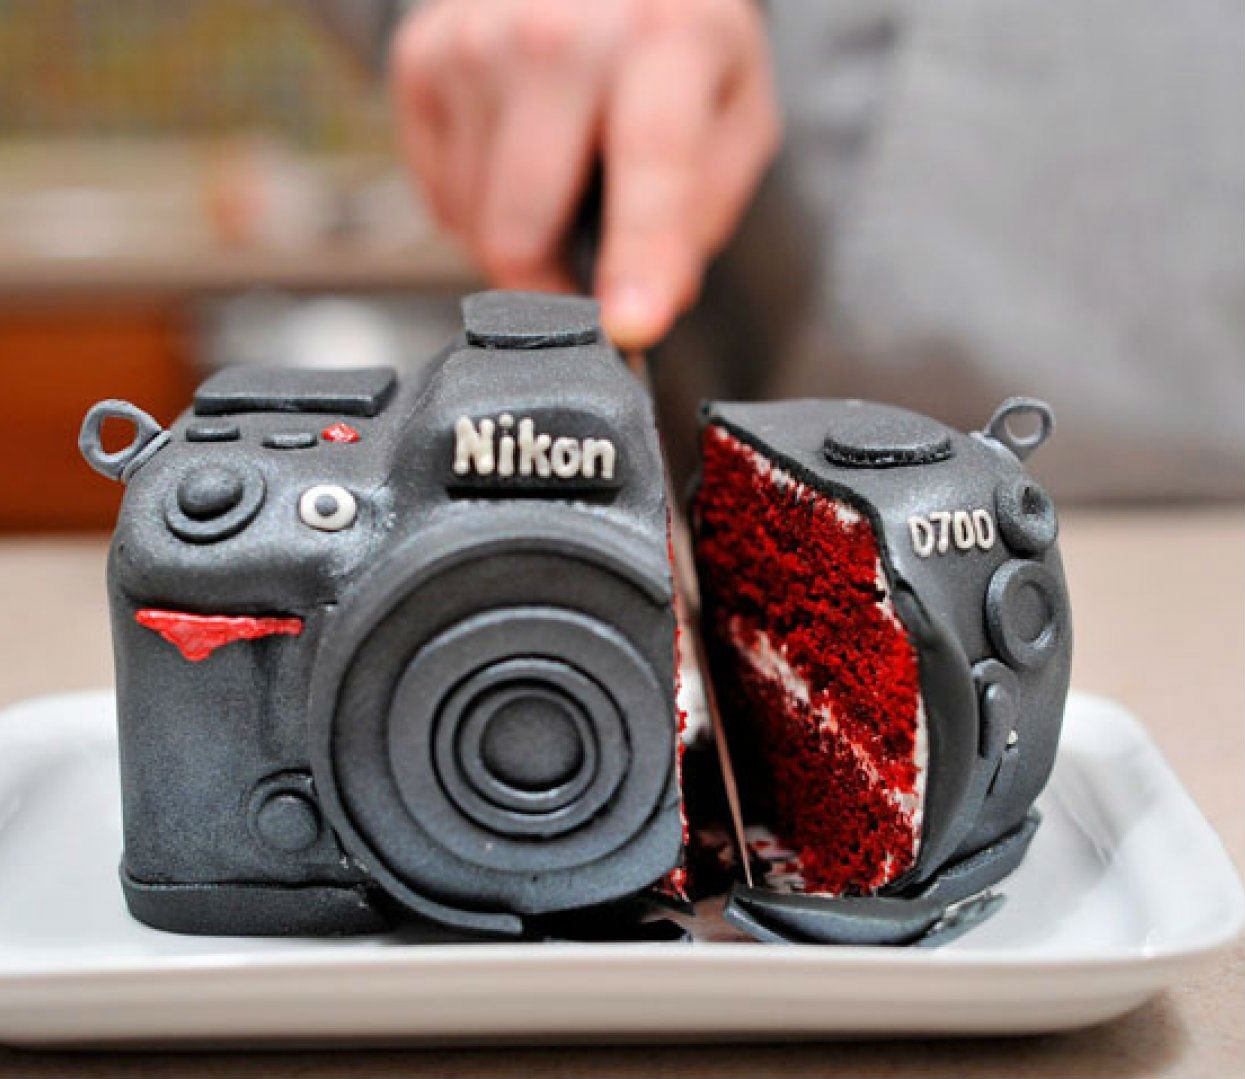 most-impressive-and-intricate-cake-designs-ever-09